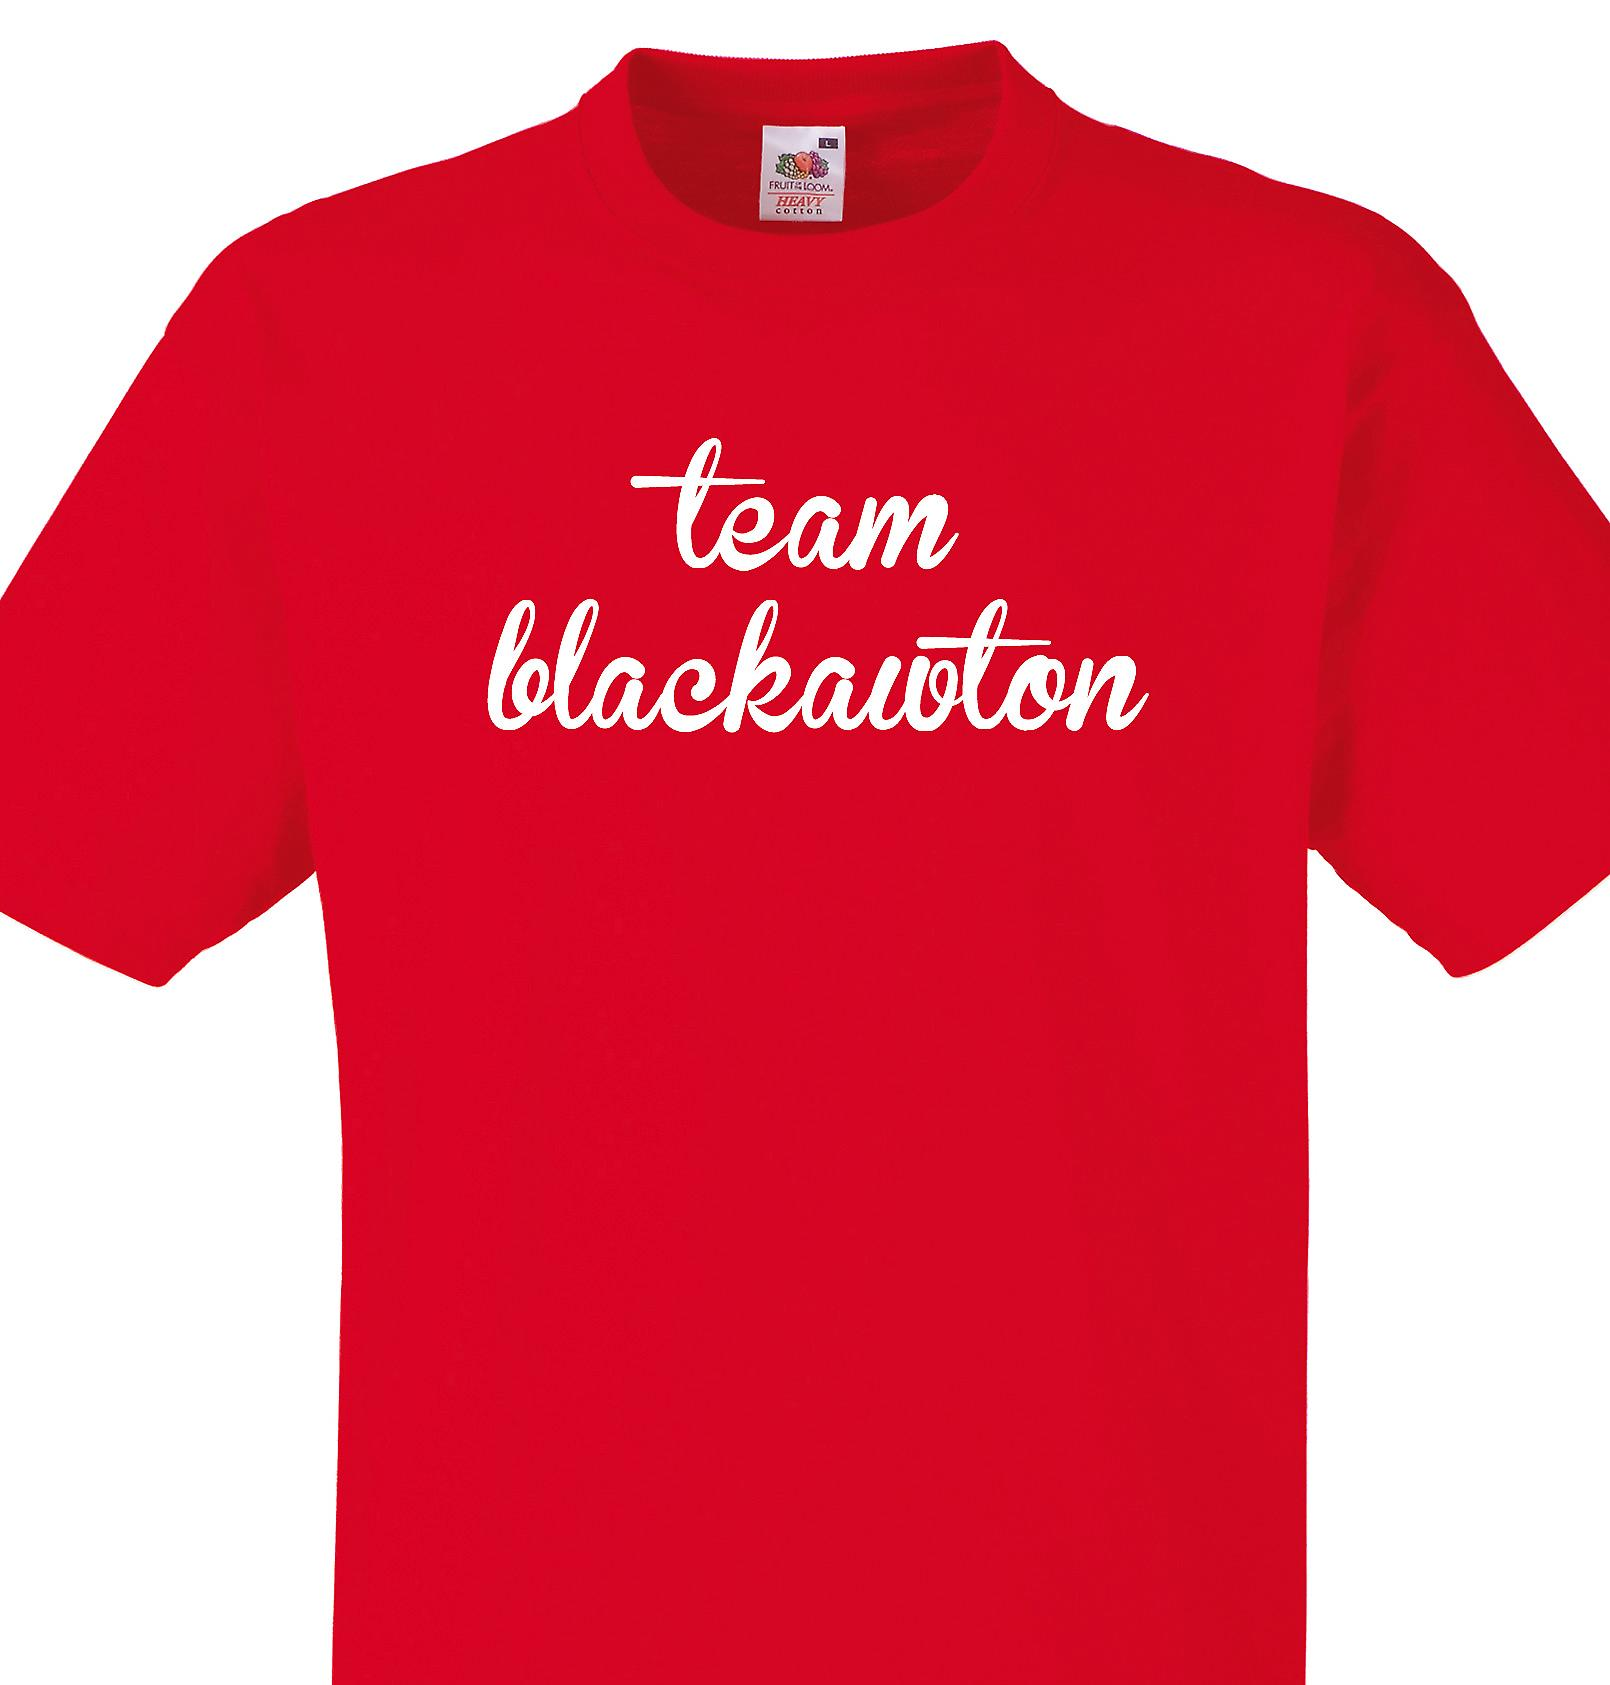 Team Blackawton Red T shirt